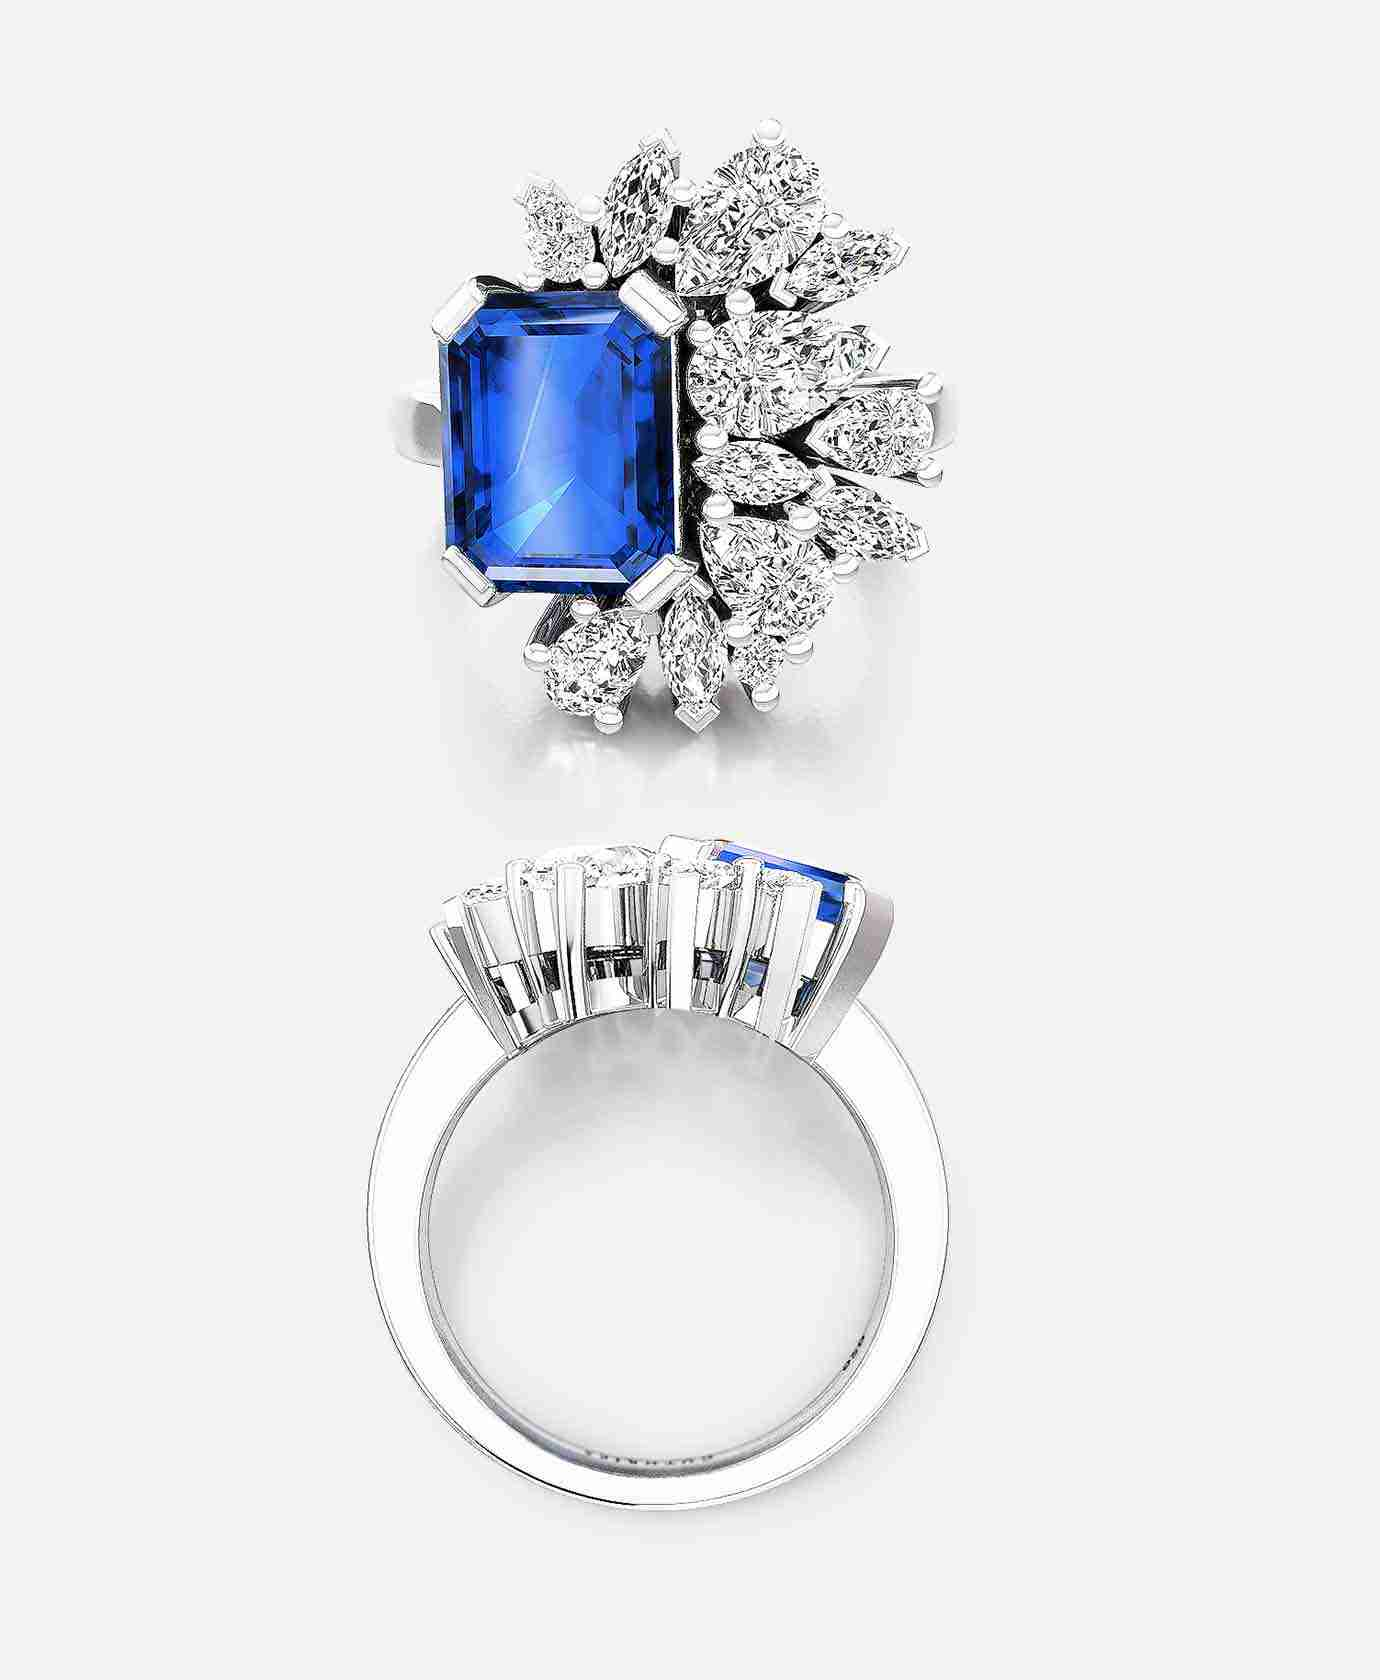 Emerald Cut Sapphire and Diamond Cocktail Ring